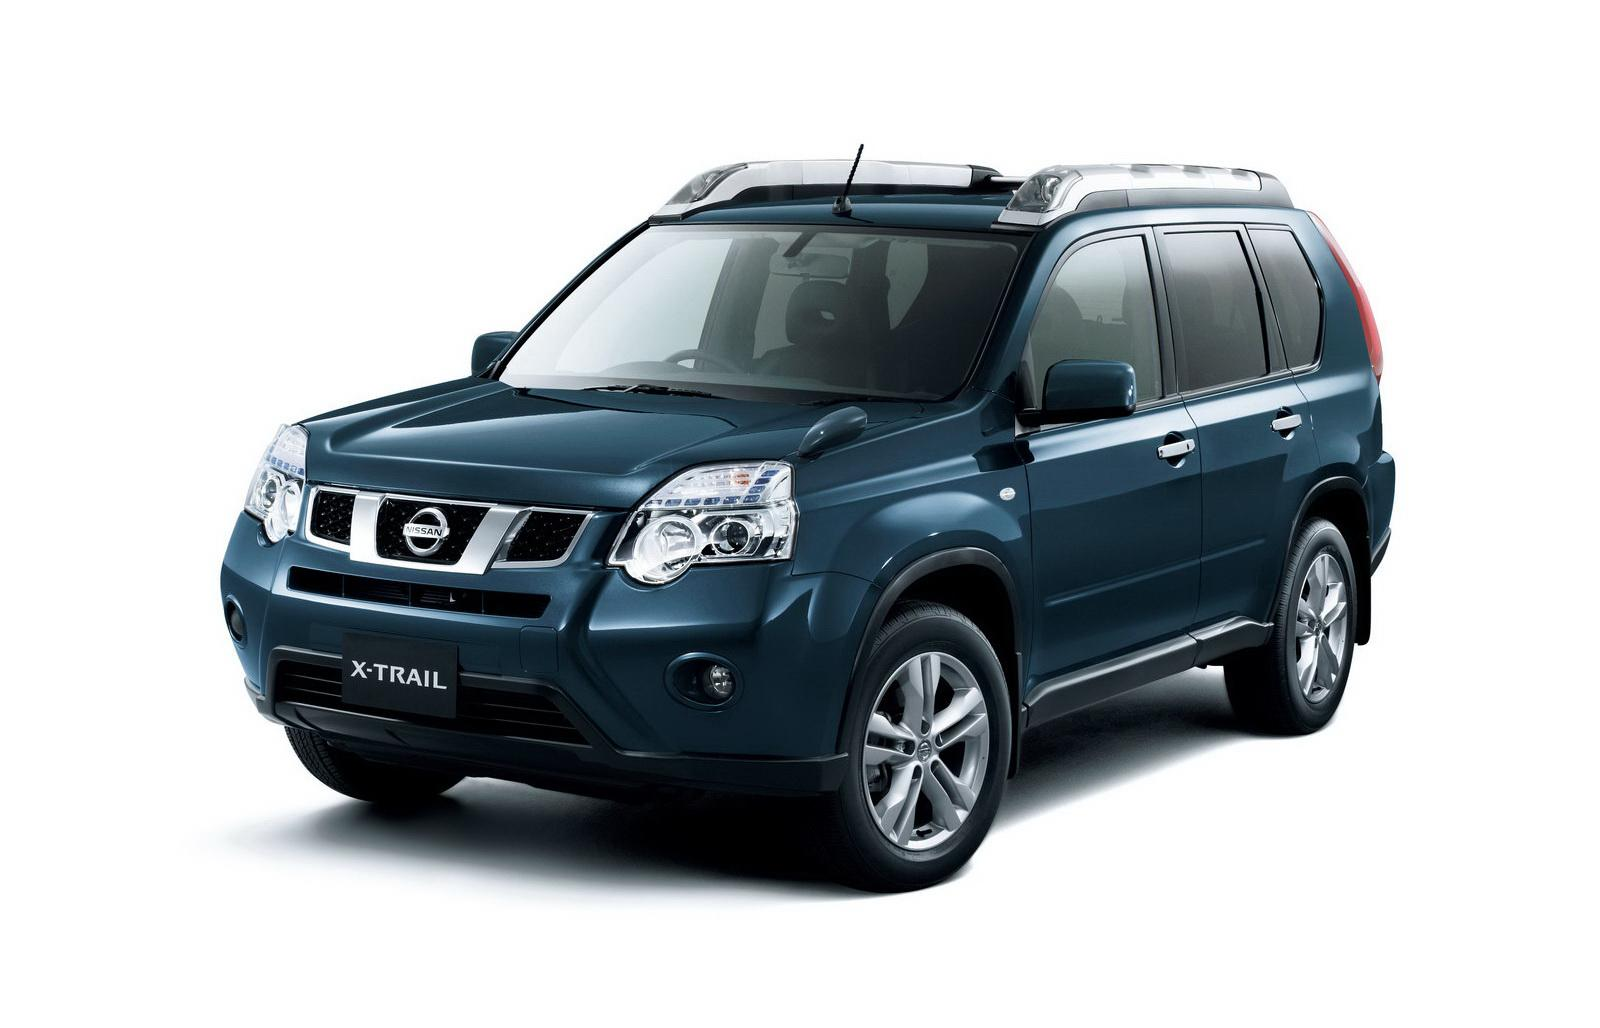 2011 nissan x trail nissan cars. Black Bedroom Furniture Sets. Home Design Ideas